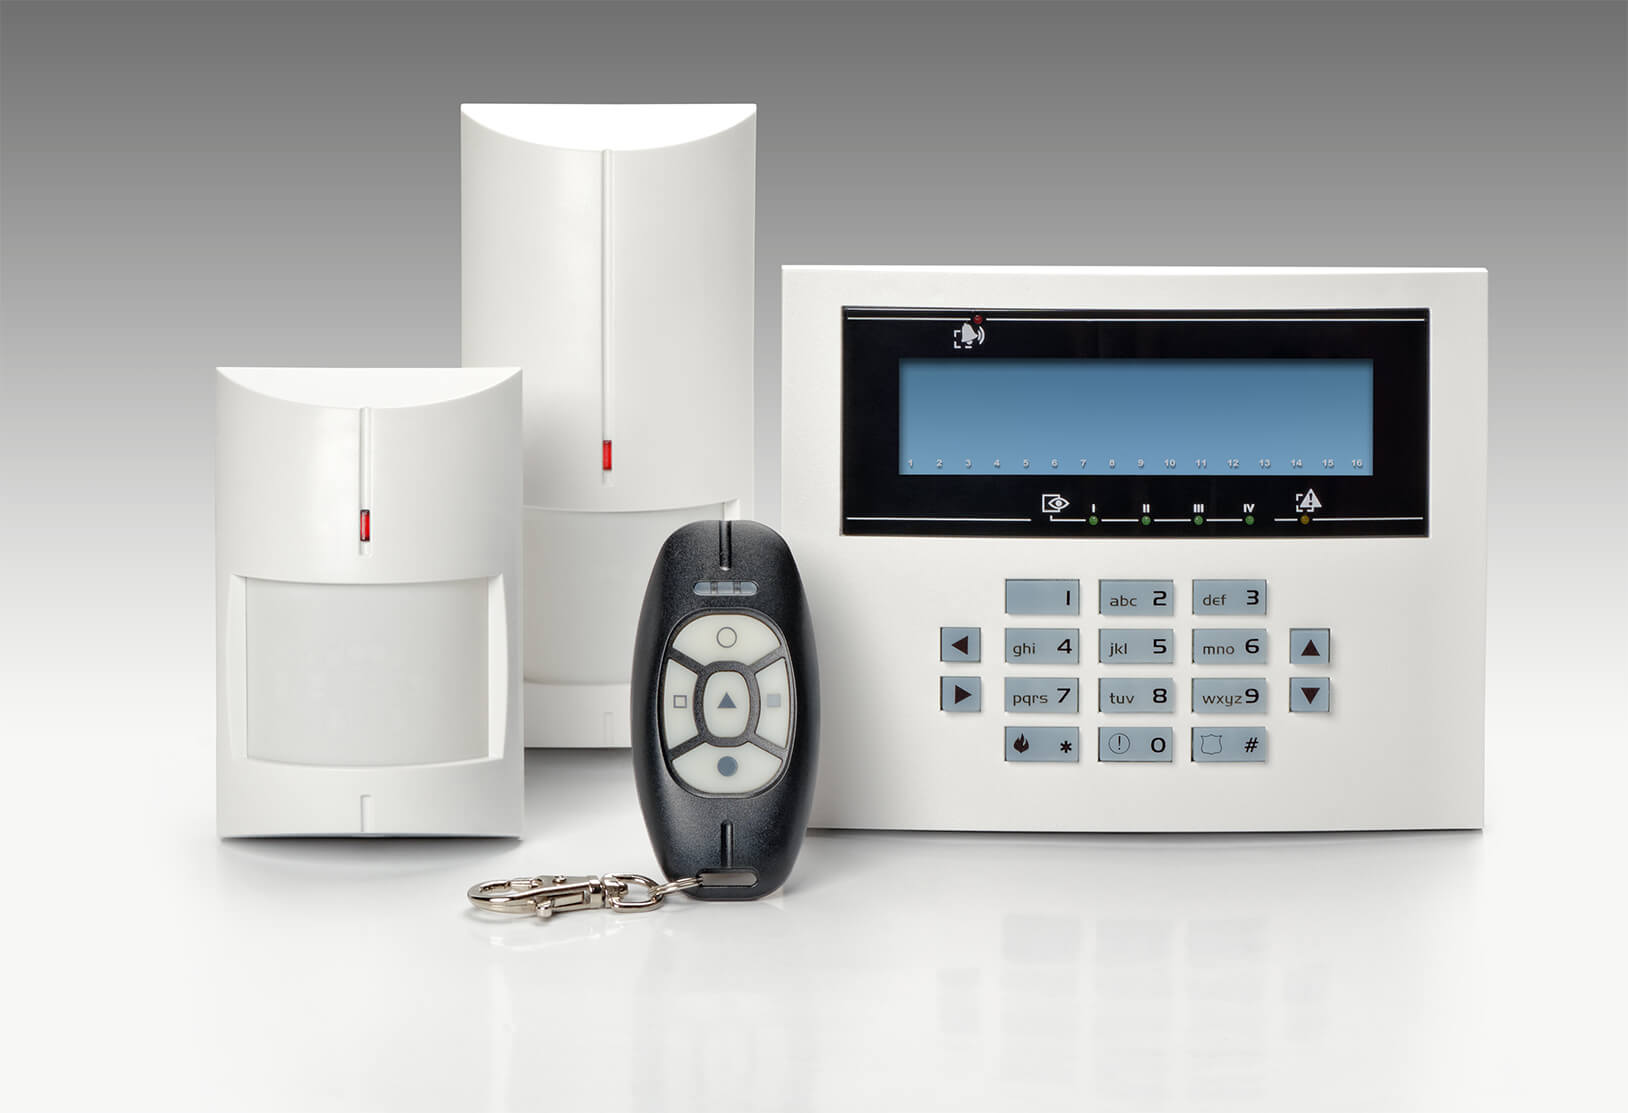 Business & Residential NACOSS Approved Burglar Alarms In Blackfriars EC4 - Local Blackfriars EC4 security company.Call 02078872244 - Dedicated to Safety & Security. Companies, shops and homes ..